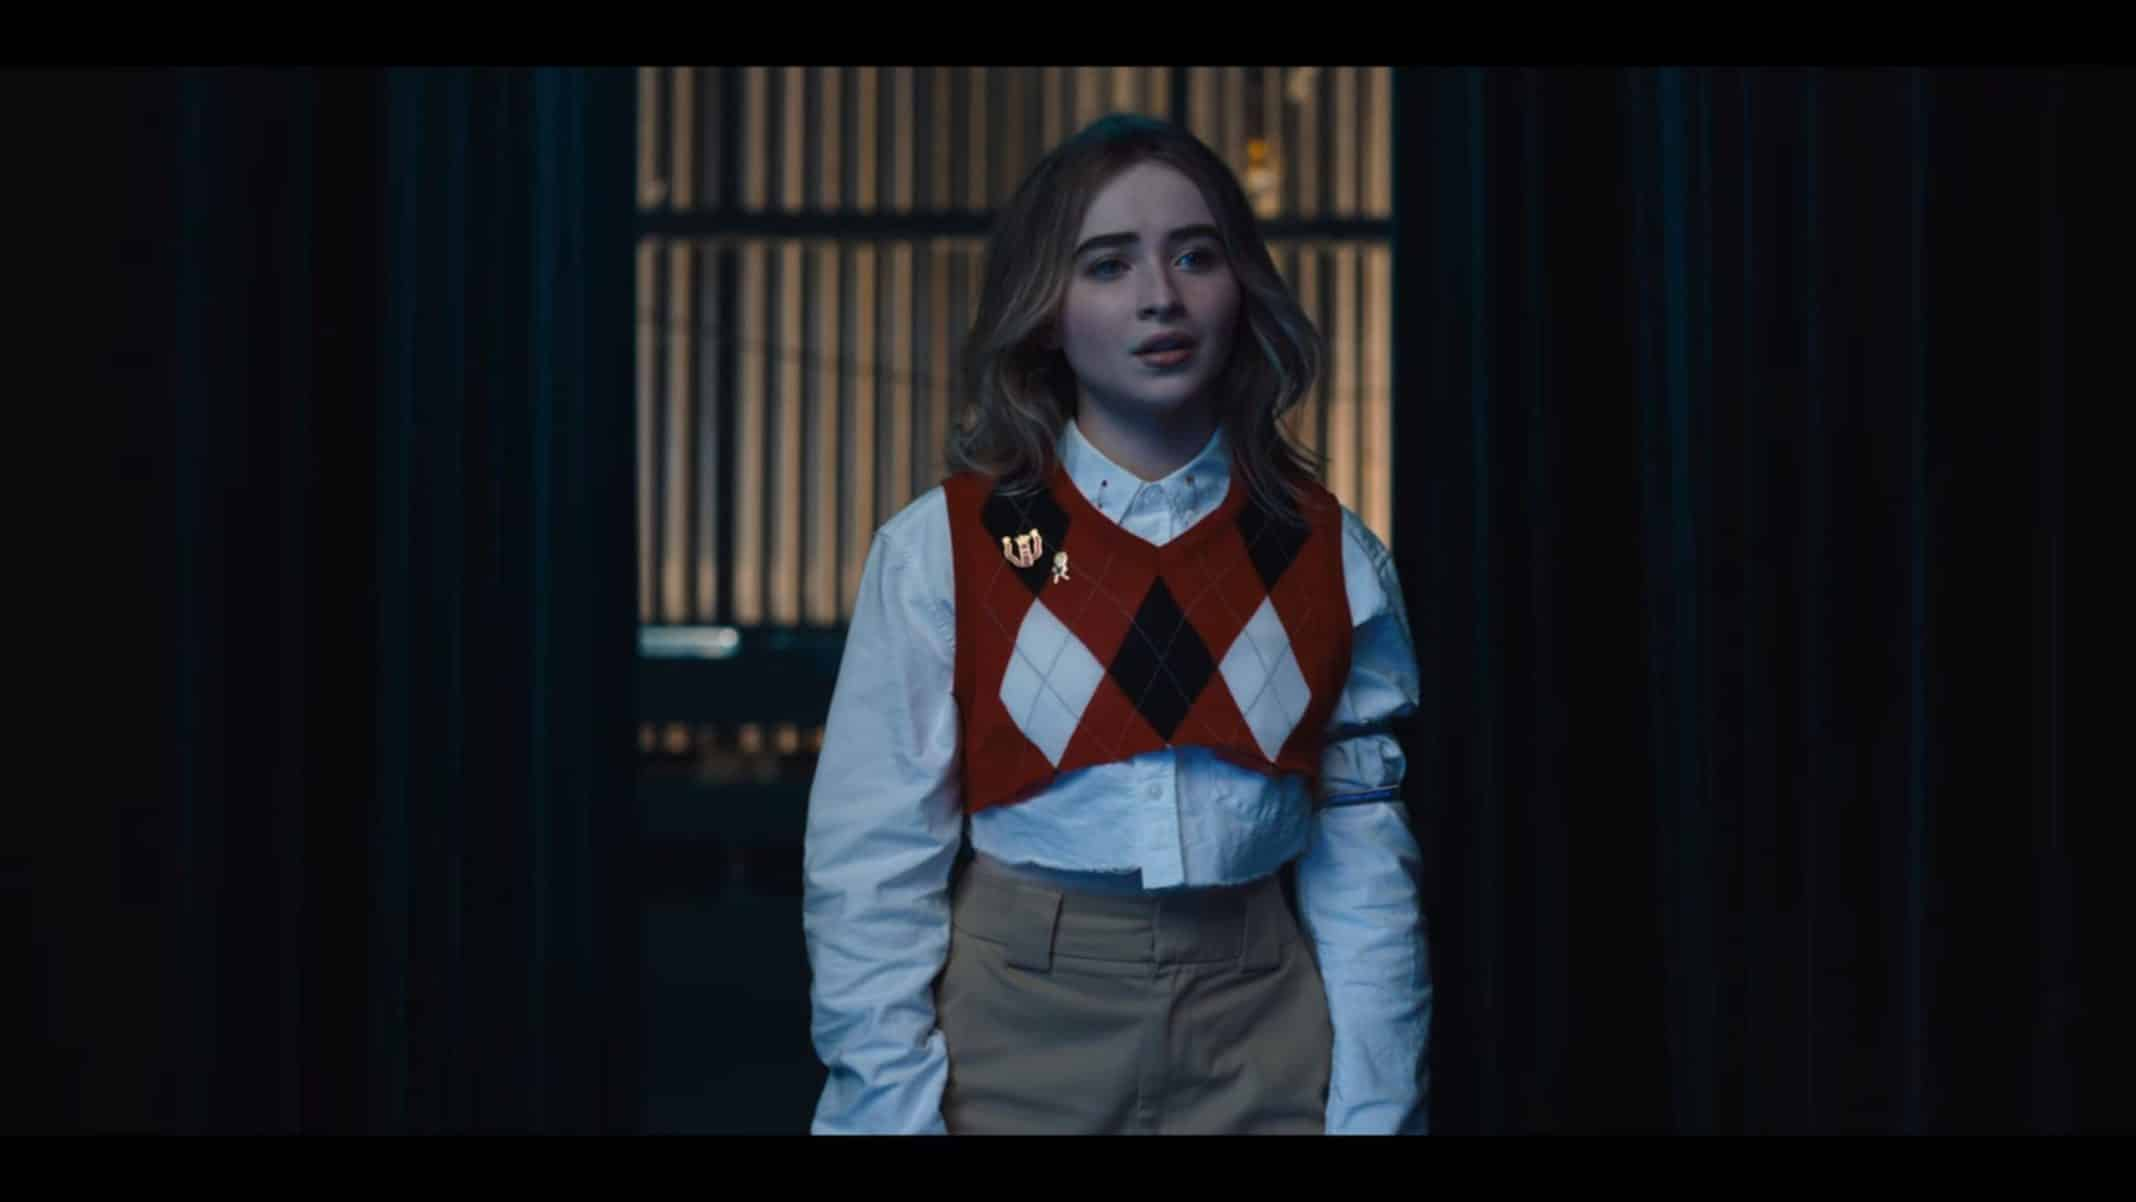 Quinn (Sabrina Carpenter) almost missing the dance competition.